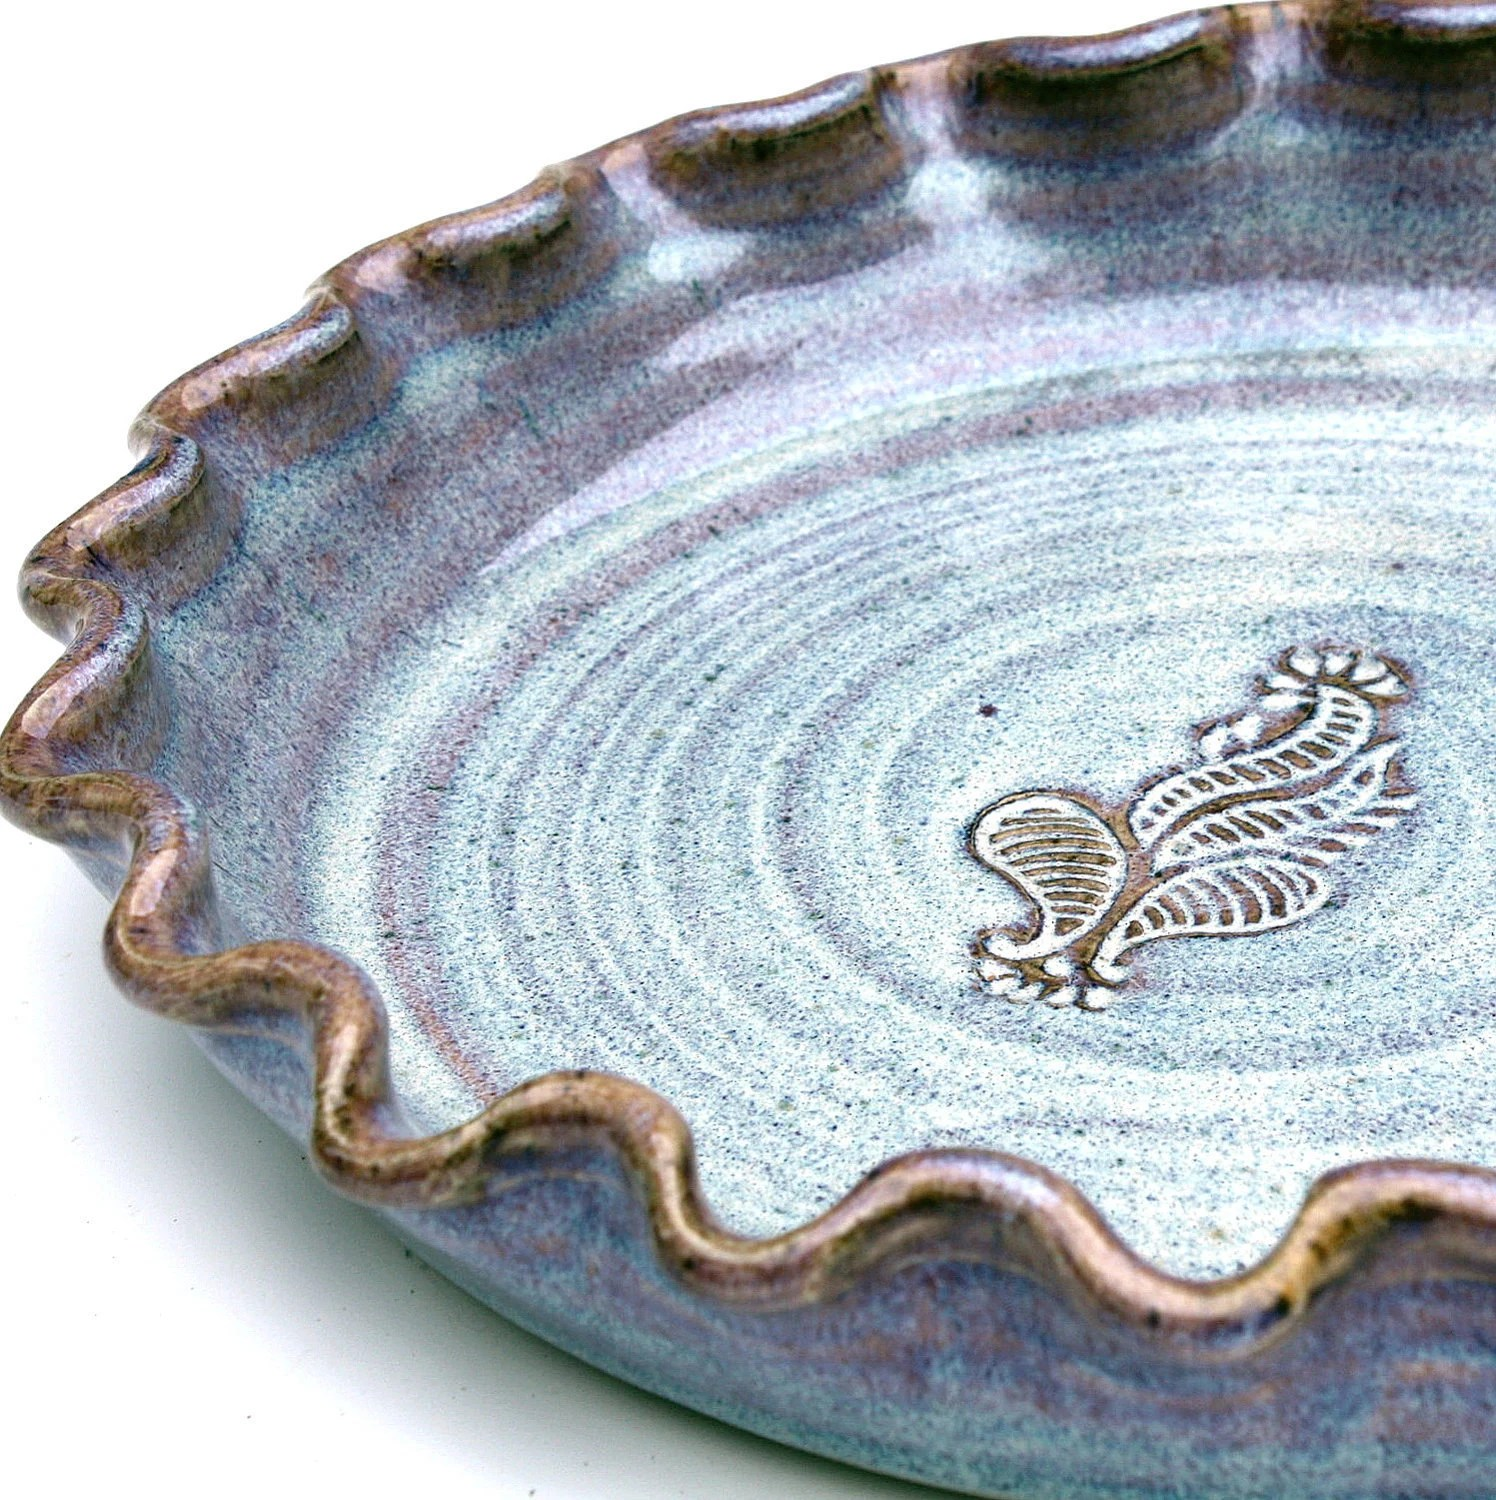 Pottery Pie Plate Quiche Baking Dish, Larger size